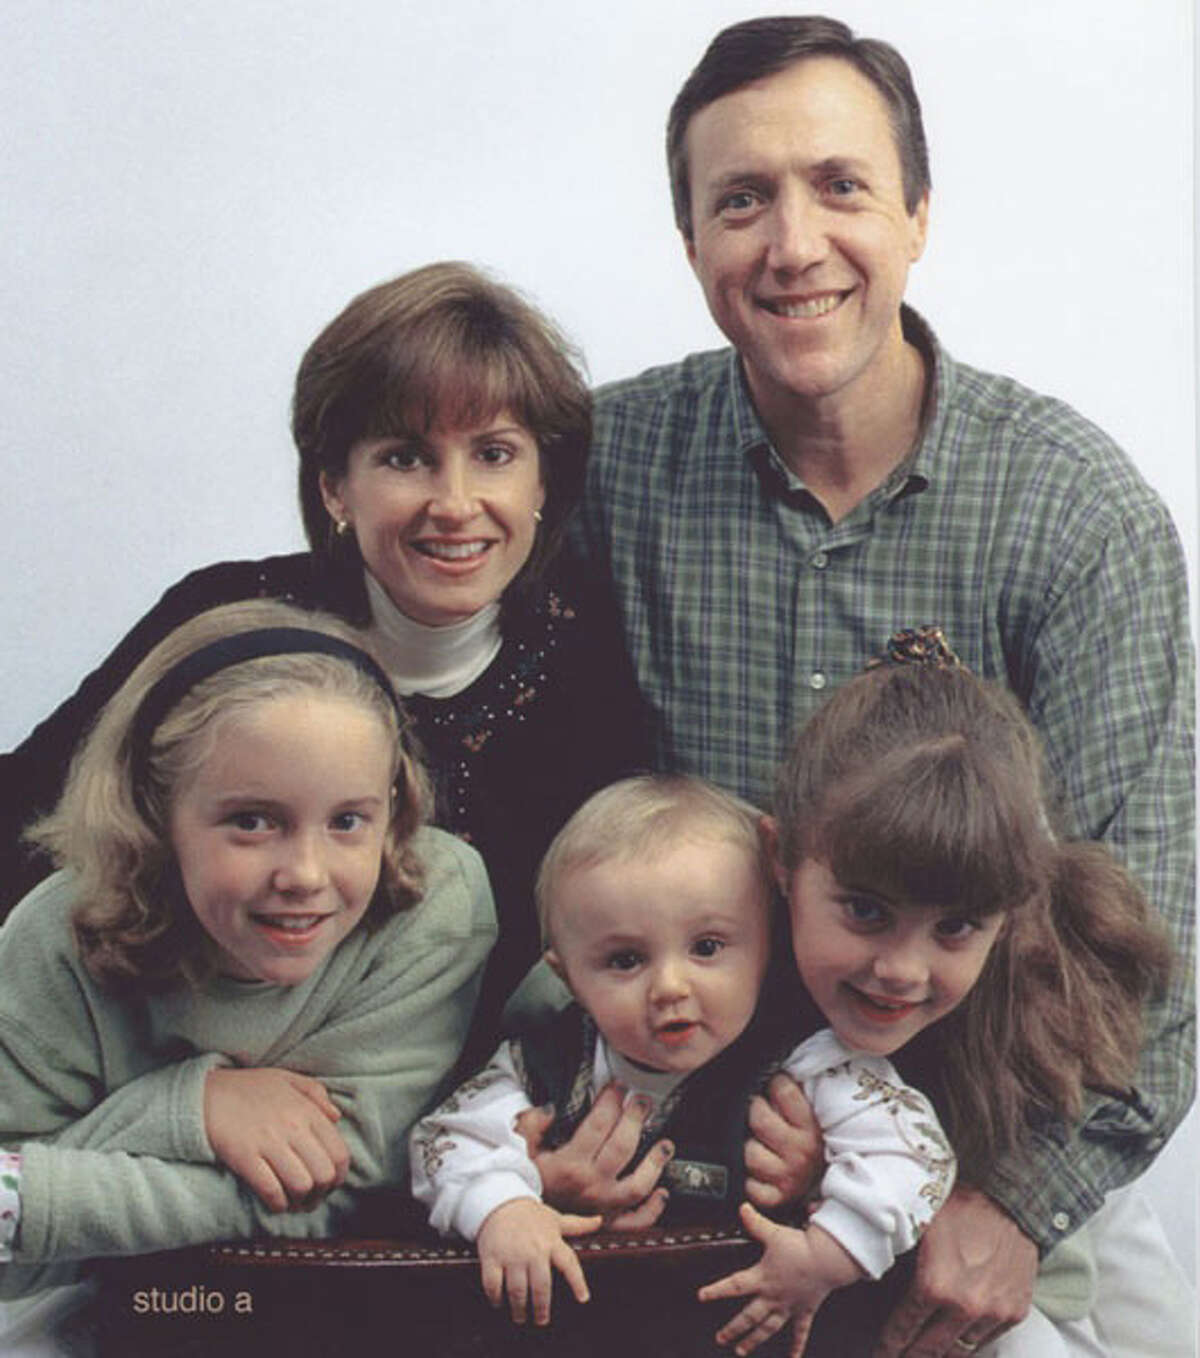 A portrait of the Lenihan family of Cos Cob in 2000. Front row, from left, siblings Megan, Joseph and Gabriele; top row from left, mother Ingrid and father Joseph, who was killed in the 9/11 attacks.